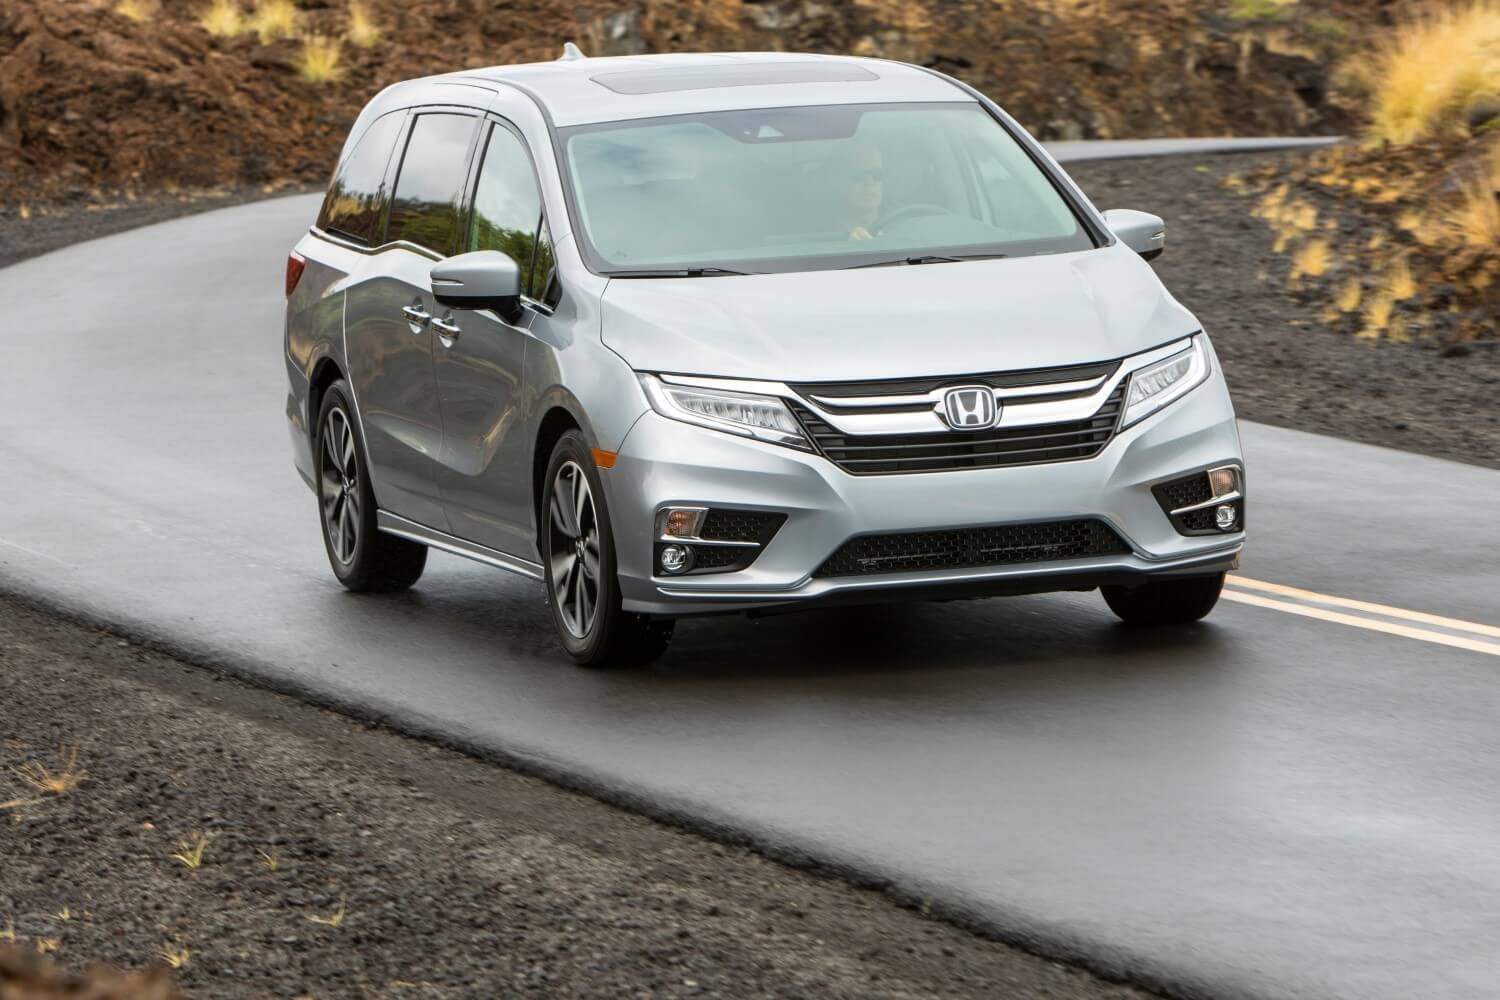 2018 Honda Odyssey front side exterior